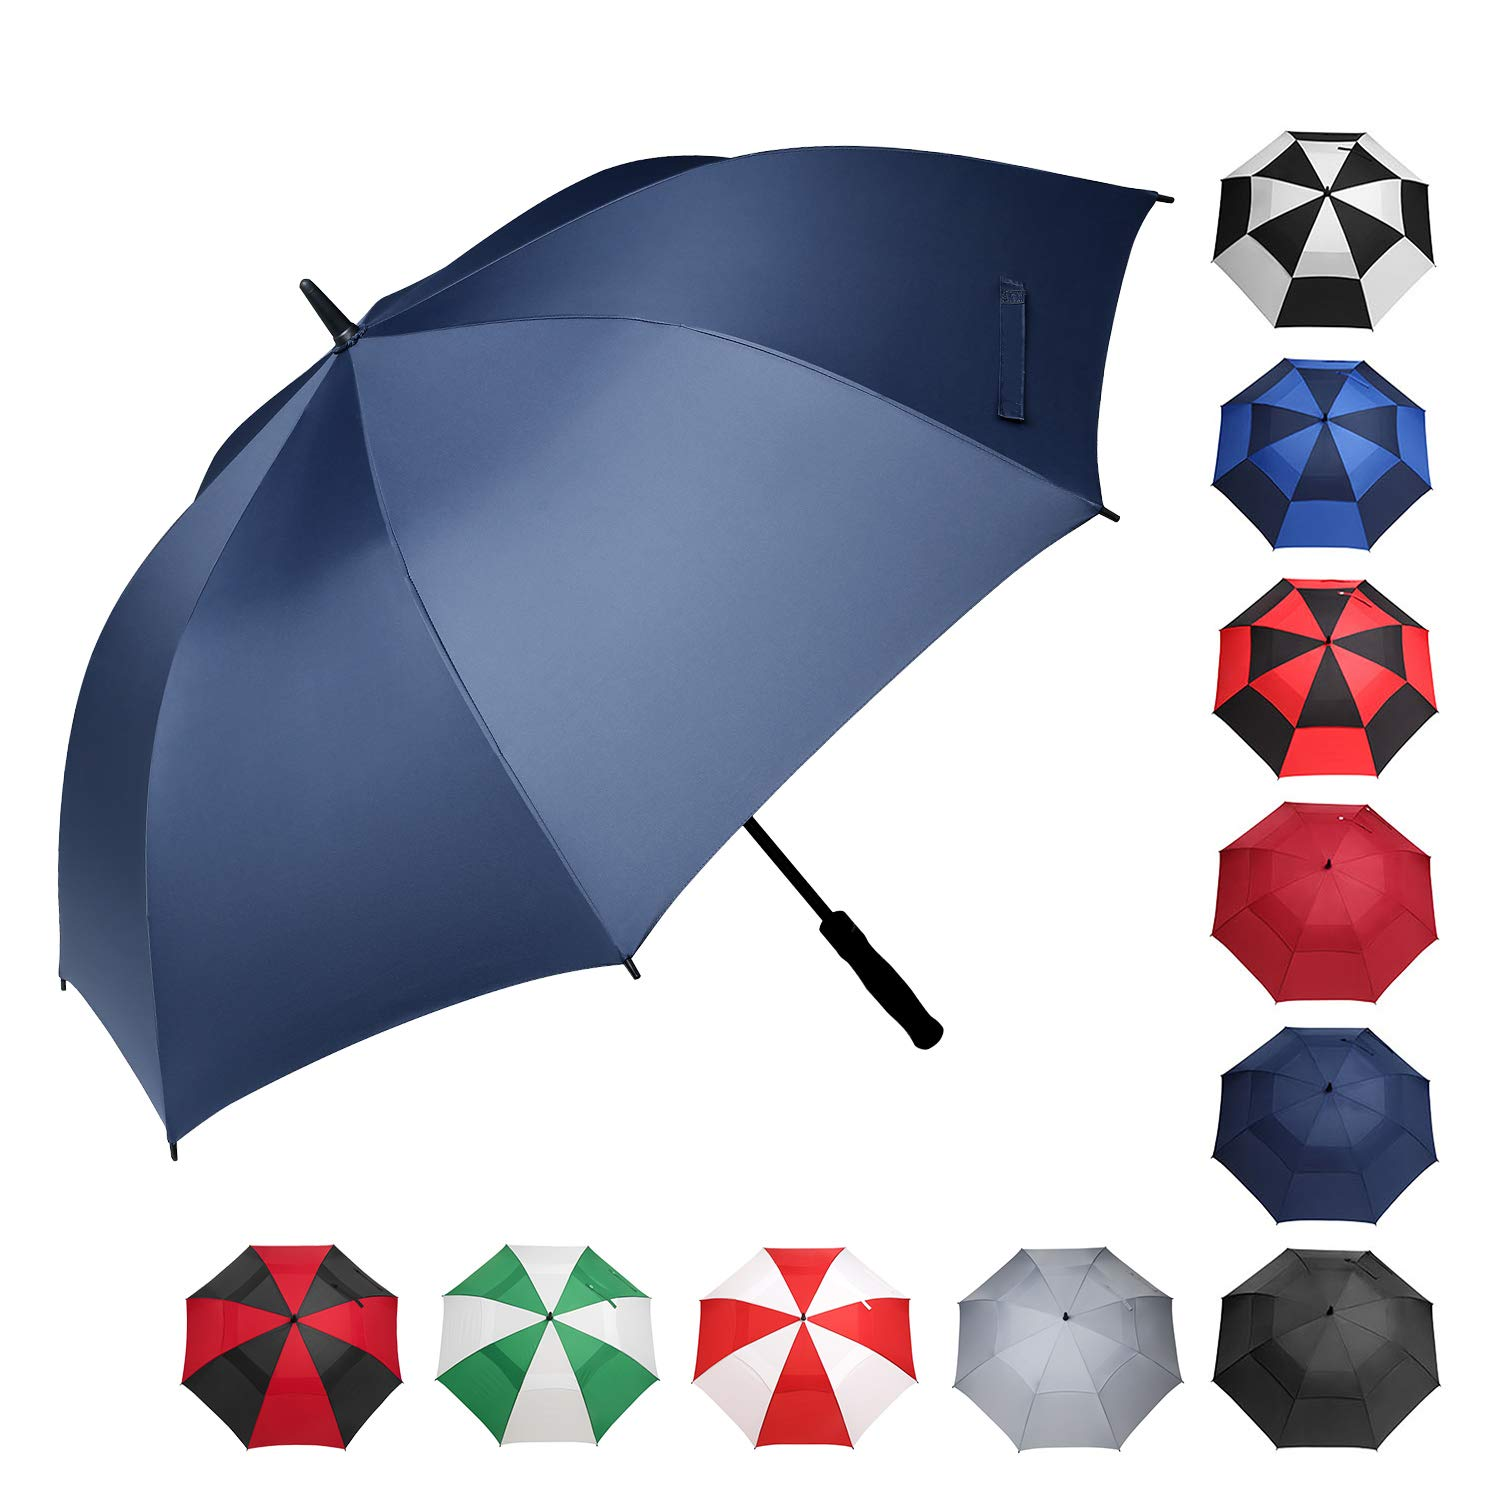 BAGAIL Golf Umbrella 68/62/58 Inch Large Oversize Windproof Waterproof Automatic Open Stick Umbrellas for Men and Women(Navy,58 inch) by BAGAIL